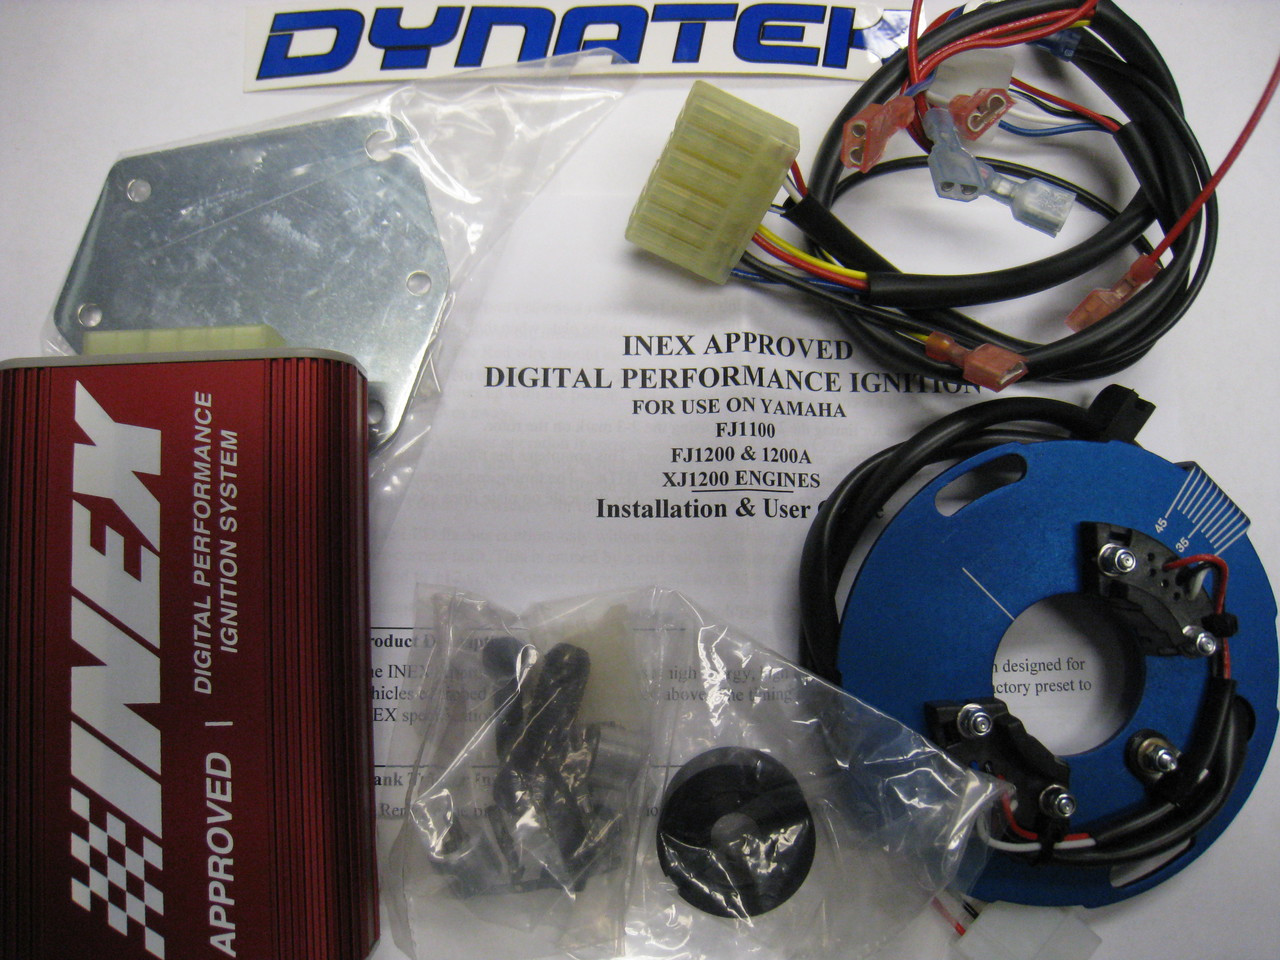 Engine Product Ignition, INEX Approved Dynatek Ignition System, 105X00X210